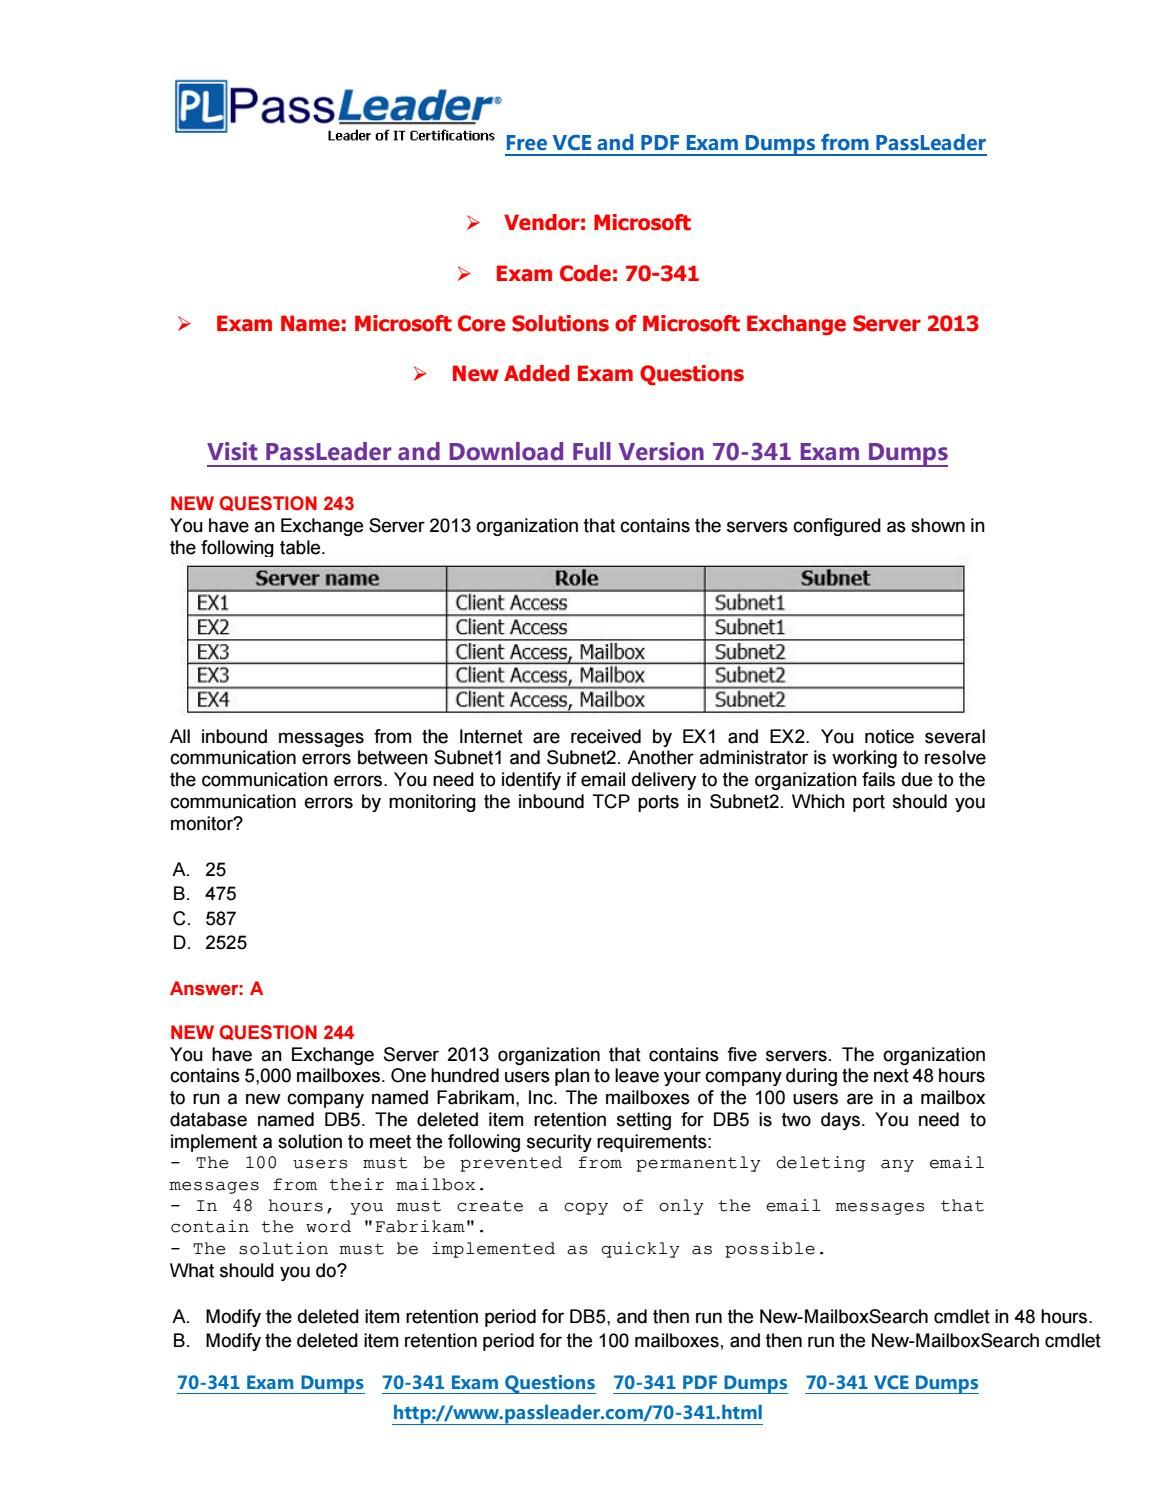 [Aug-2016] New Free PassLeader 70-341 Dumps with VCE and PDF  [Aug-2016] New…